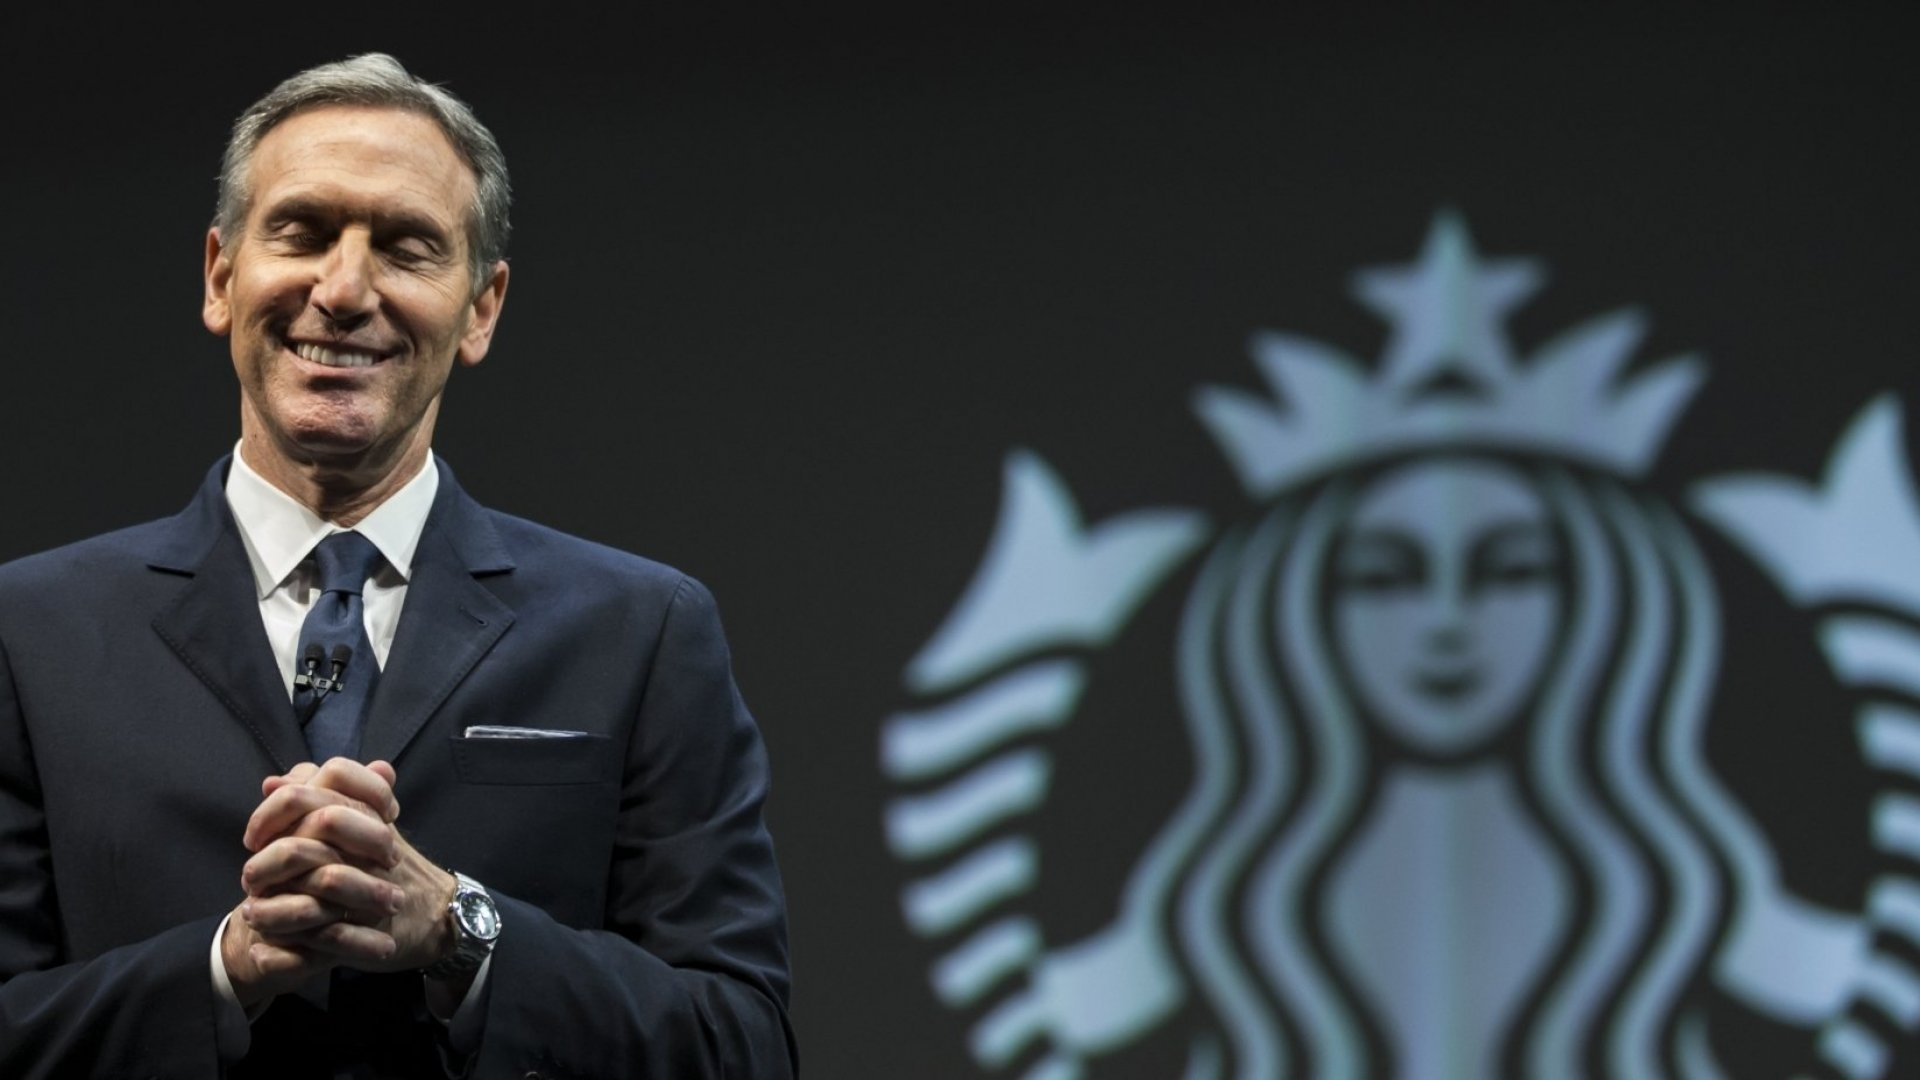 Starbucks Hired 10,000 Veterans and Now It Wants to Hire 15,000 More